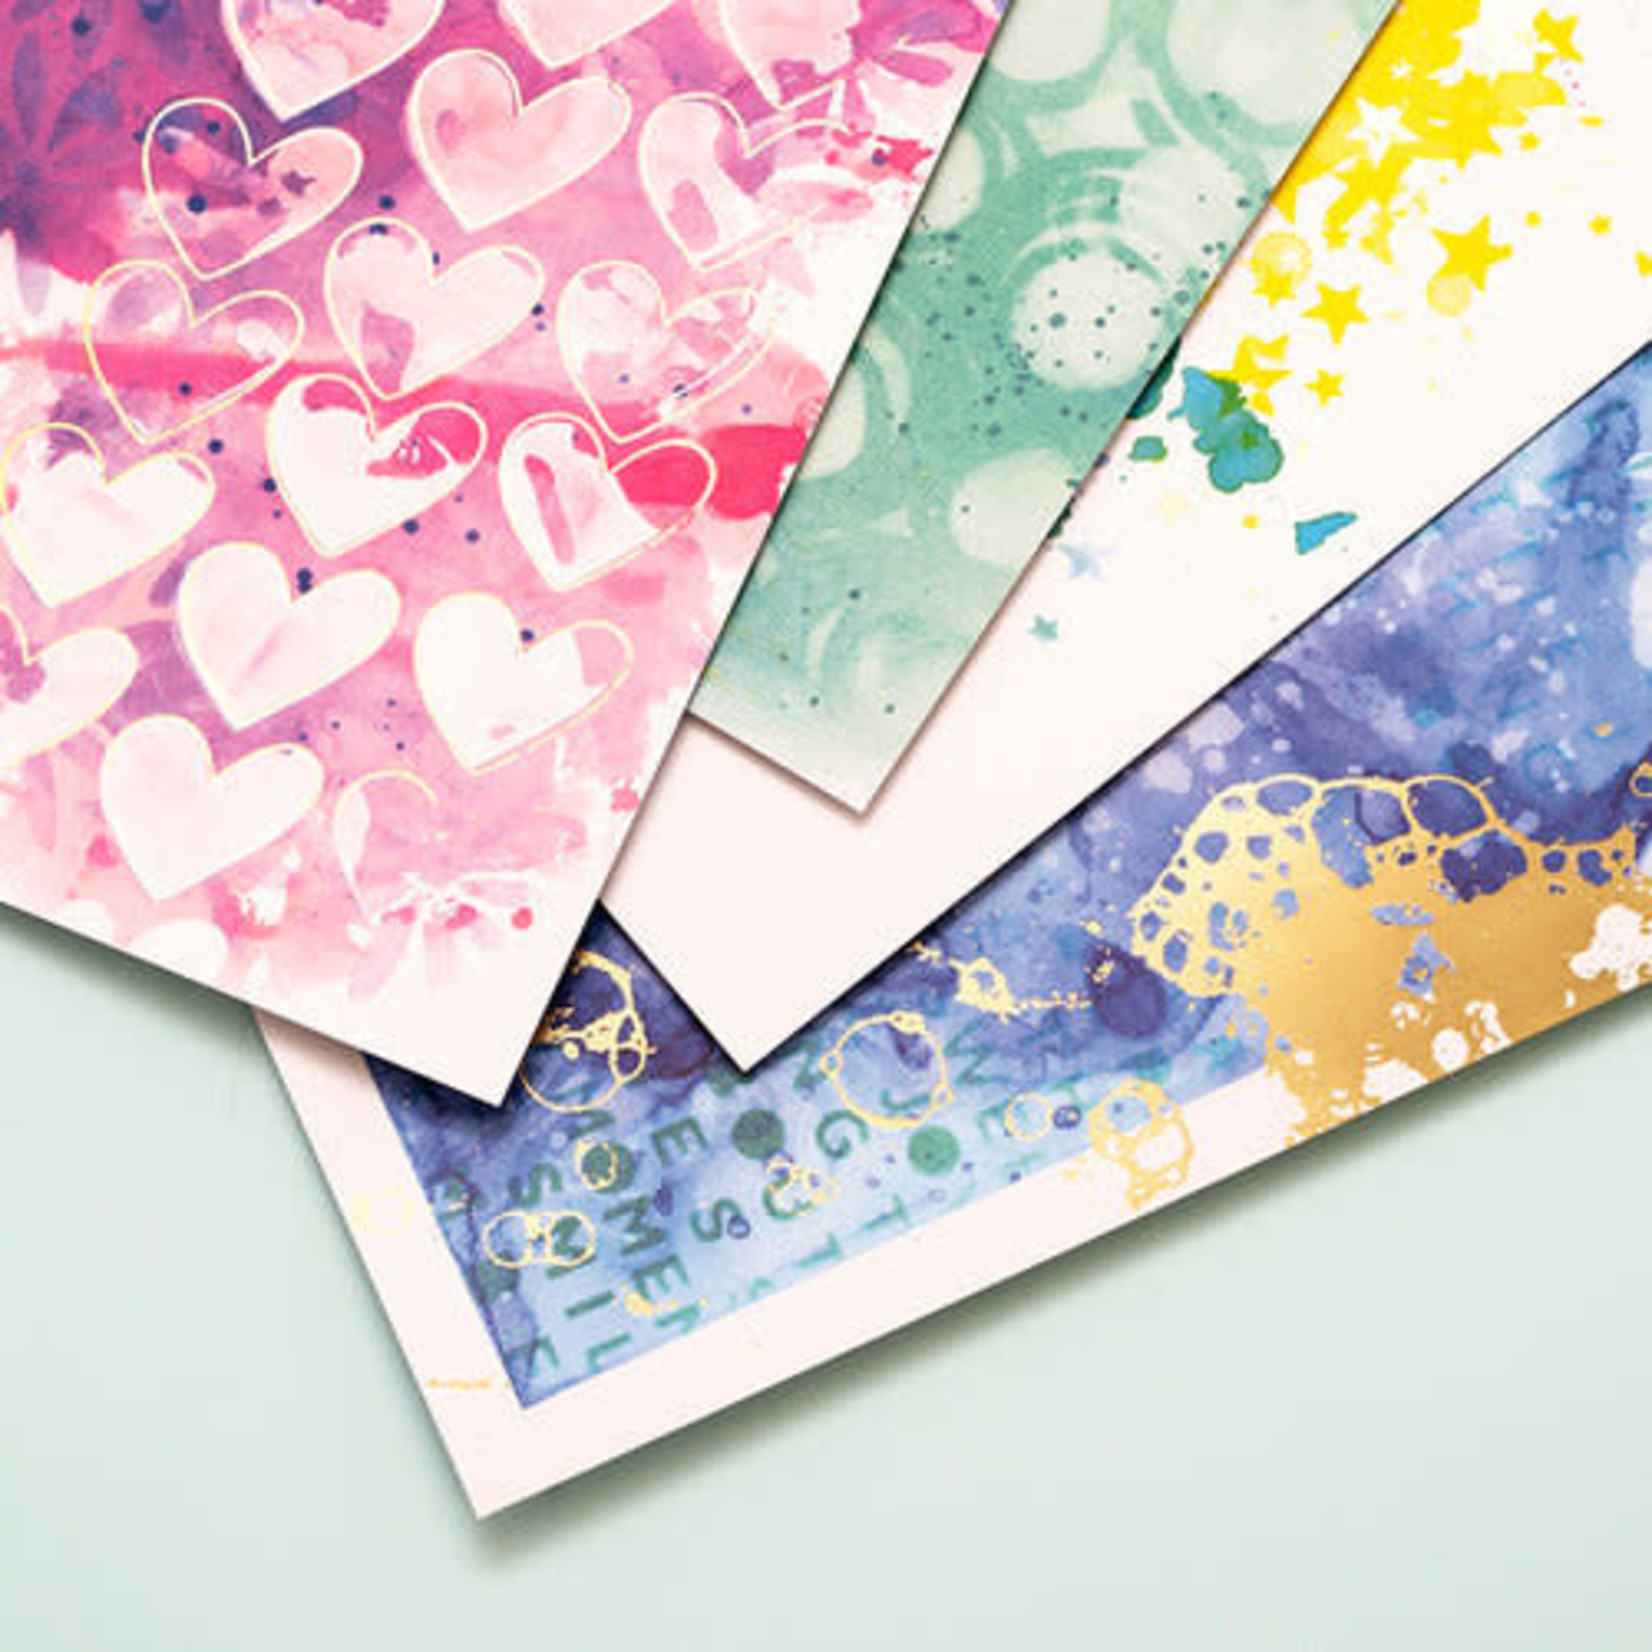 American Crafts Vicki Boutin - Ready to Use Mixed Media Paper Pad